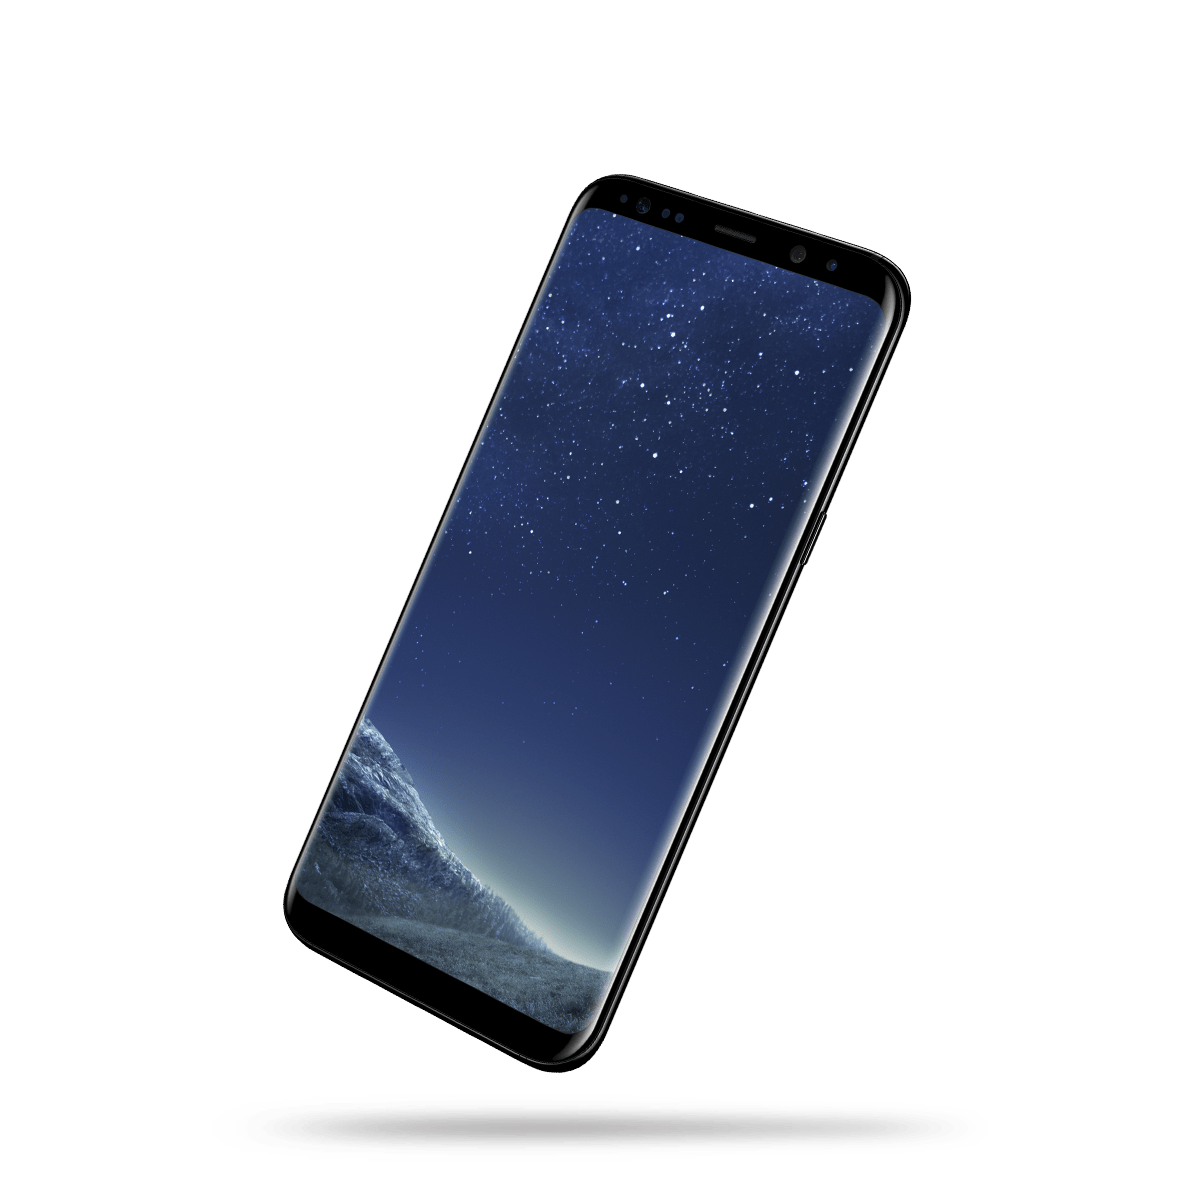 Mobile Samsung The Samsung Galaxy S8 Mobile Phone Has Arrived Videotron